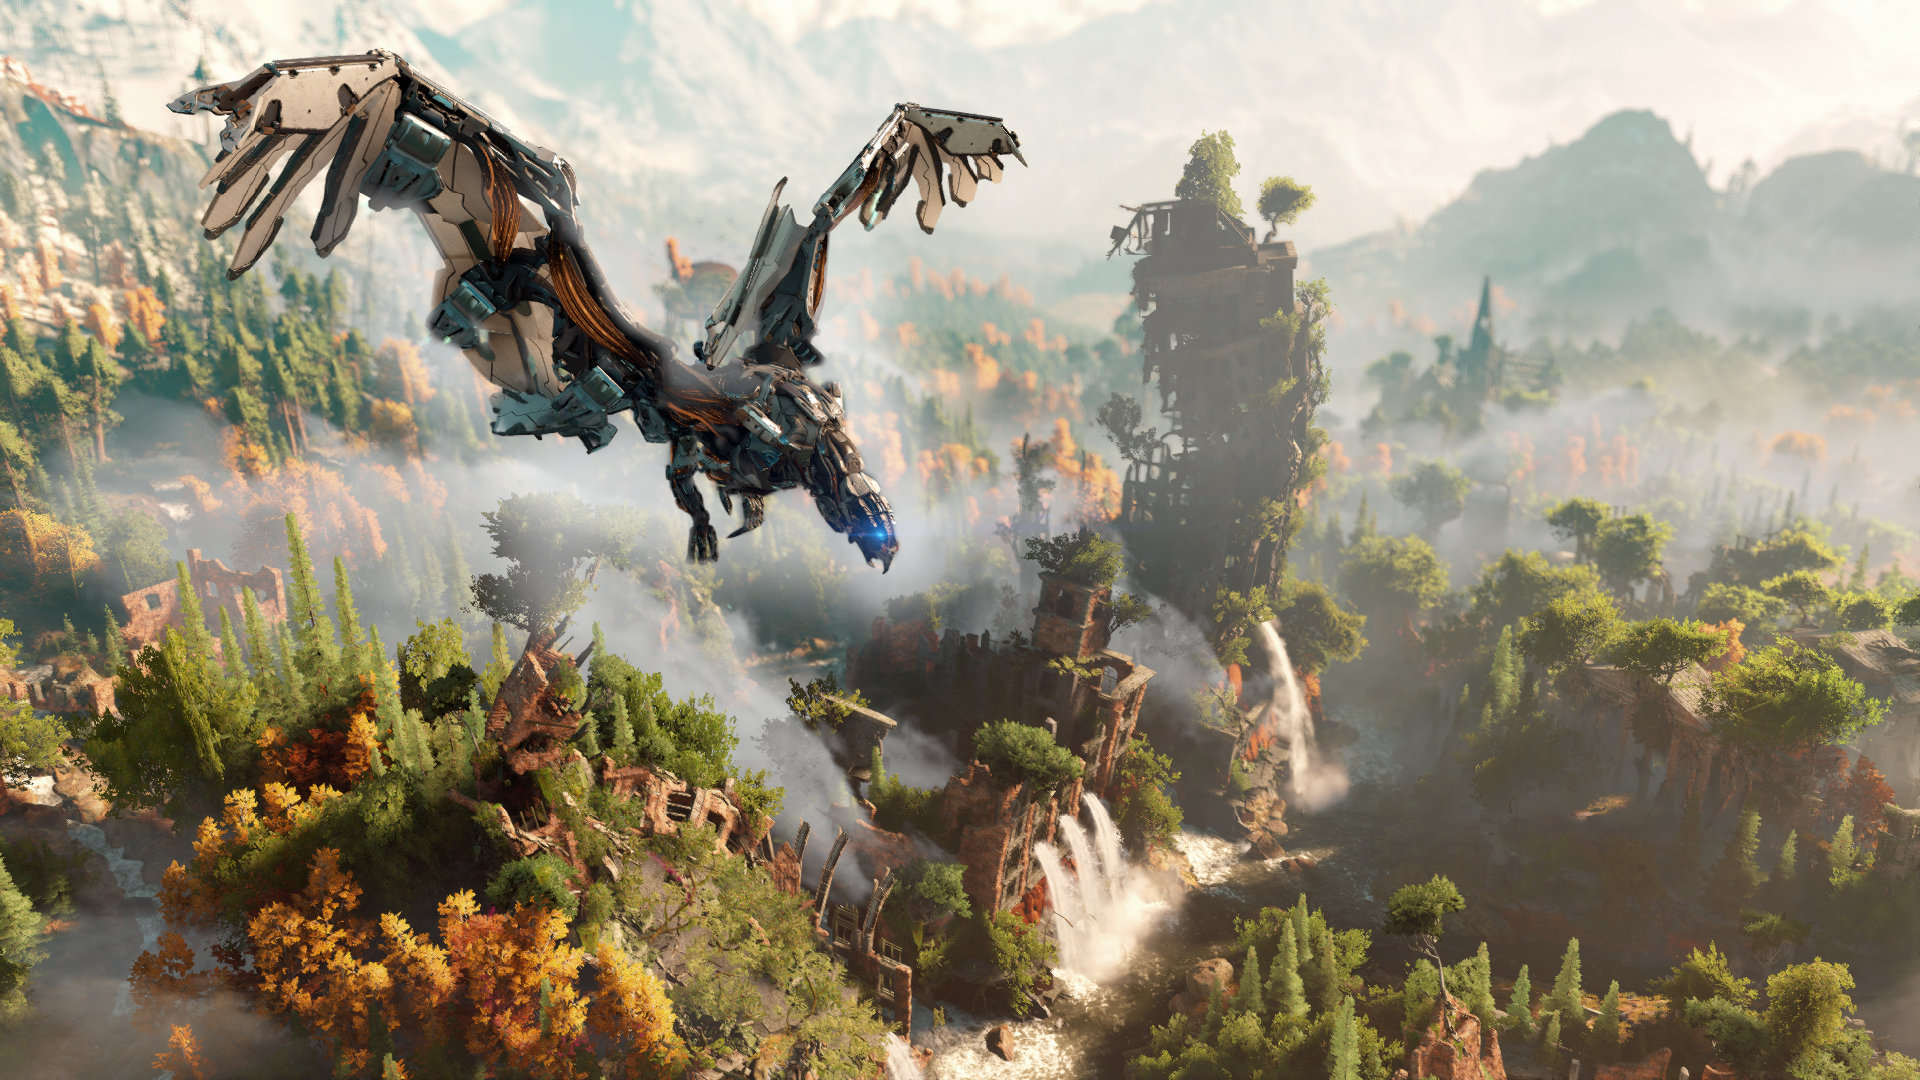 https://media.playstation.com/is/image/SCEA/horizon-zero-dawn-screen-08-us-15jun15?$MediaCarousel_Original$